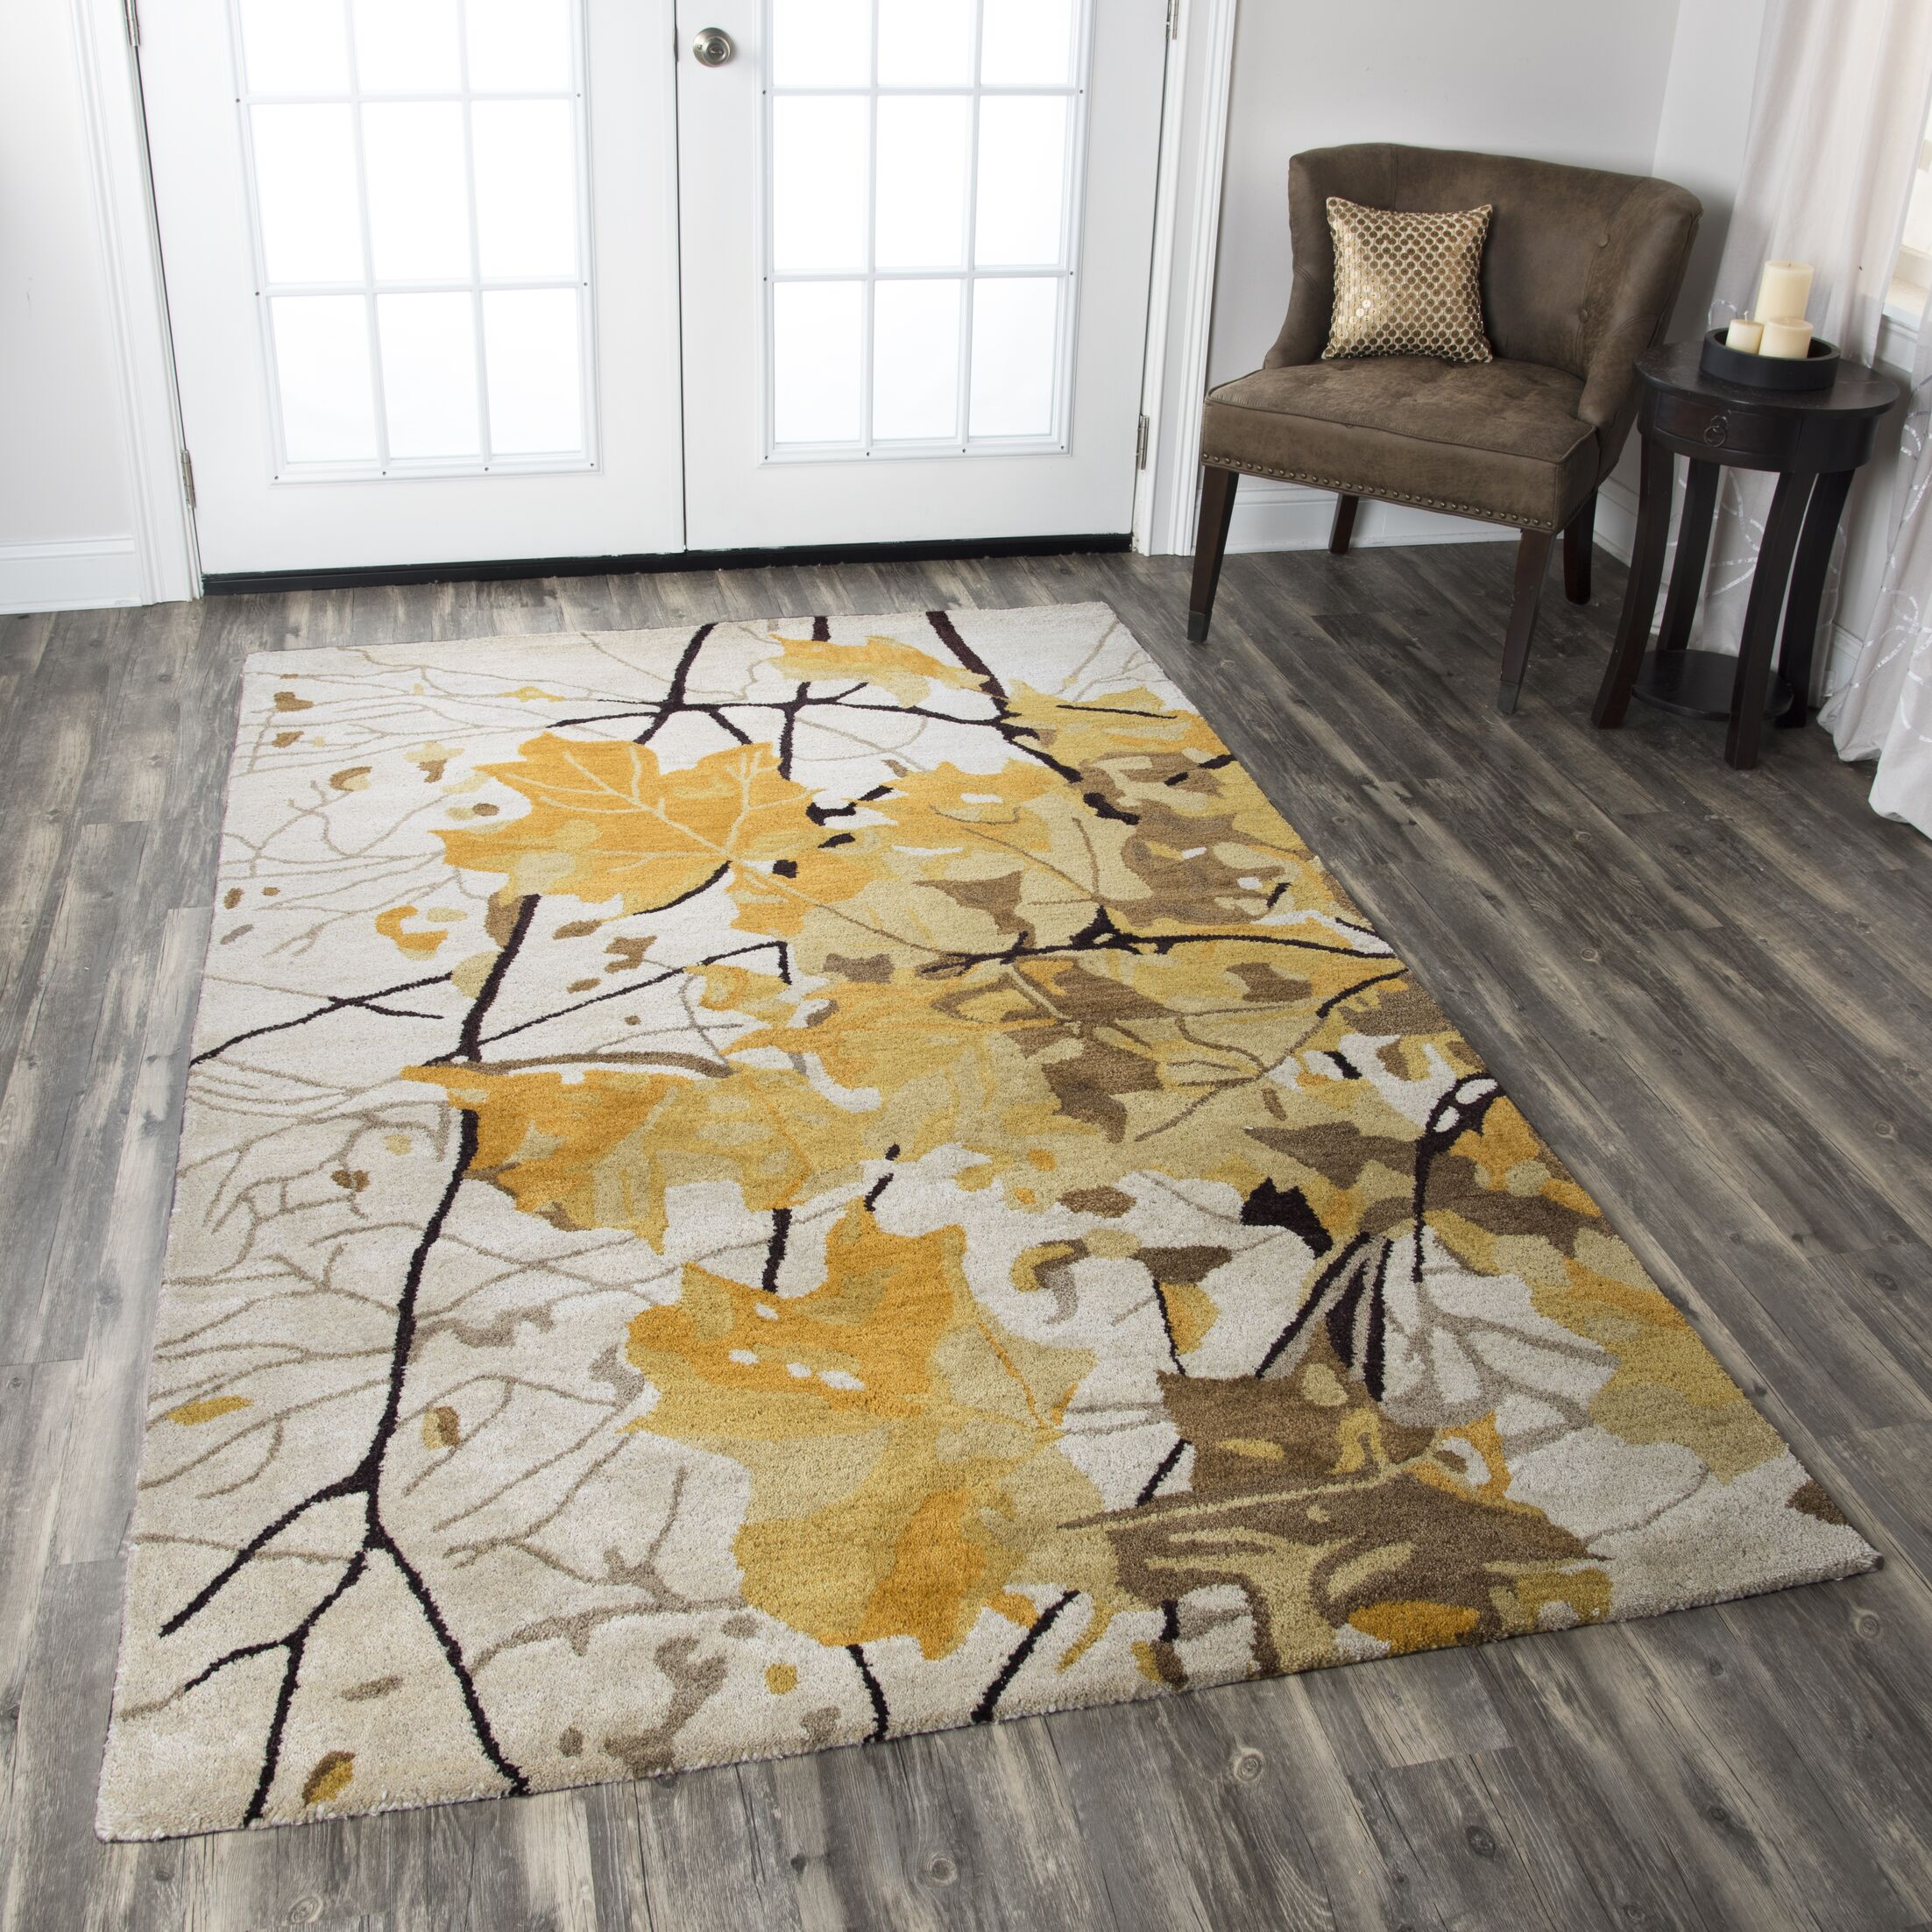 Bremen Hand-Tufted Beige/Yellow Area Rug Rug Size: Rectangle 5' x 8'